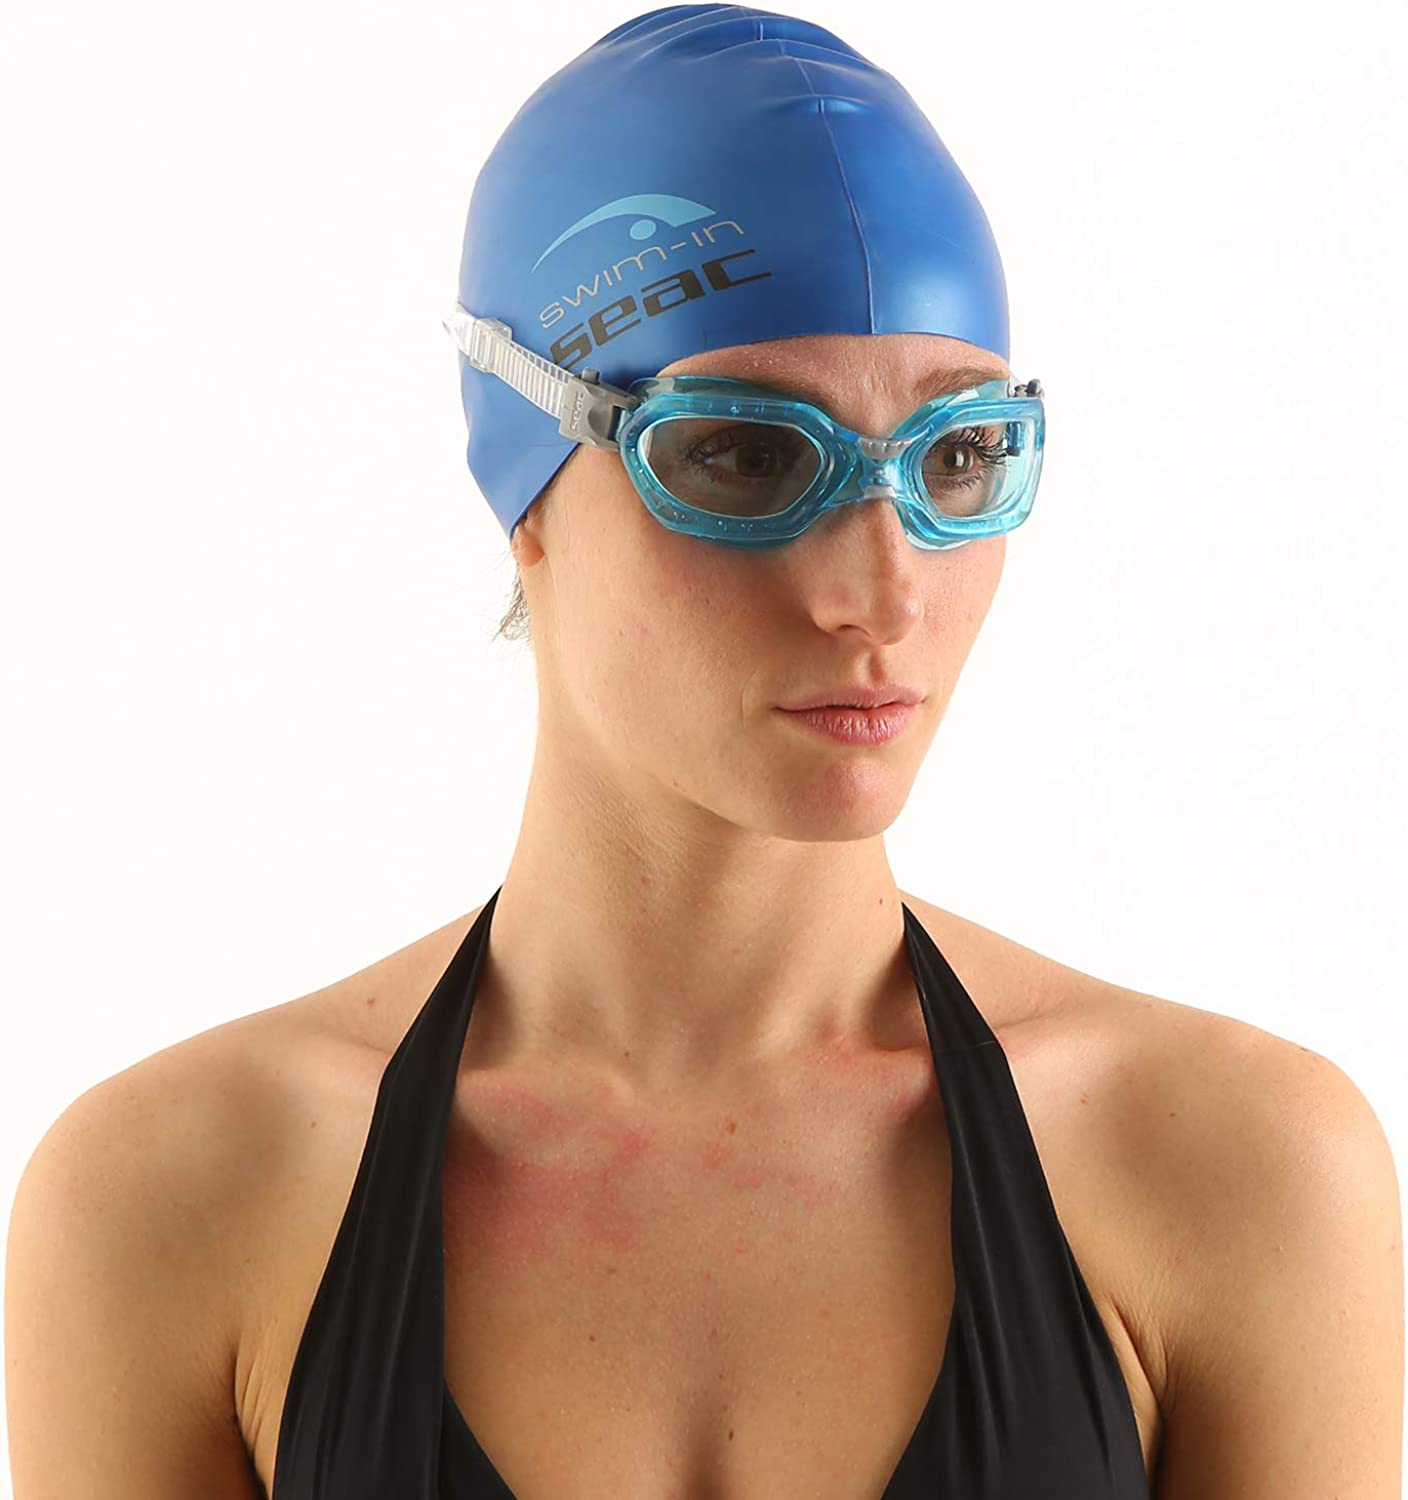 Ideal for Men and Women SEAC Silicone Cap for Swimming in The Pool